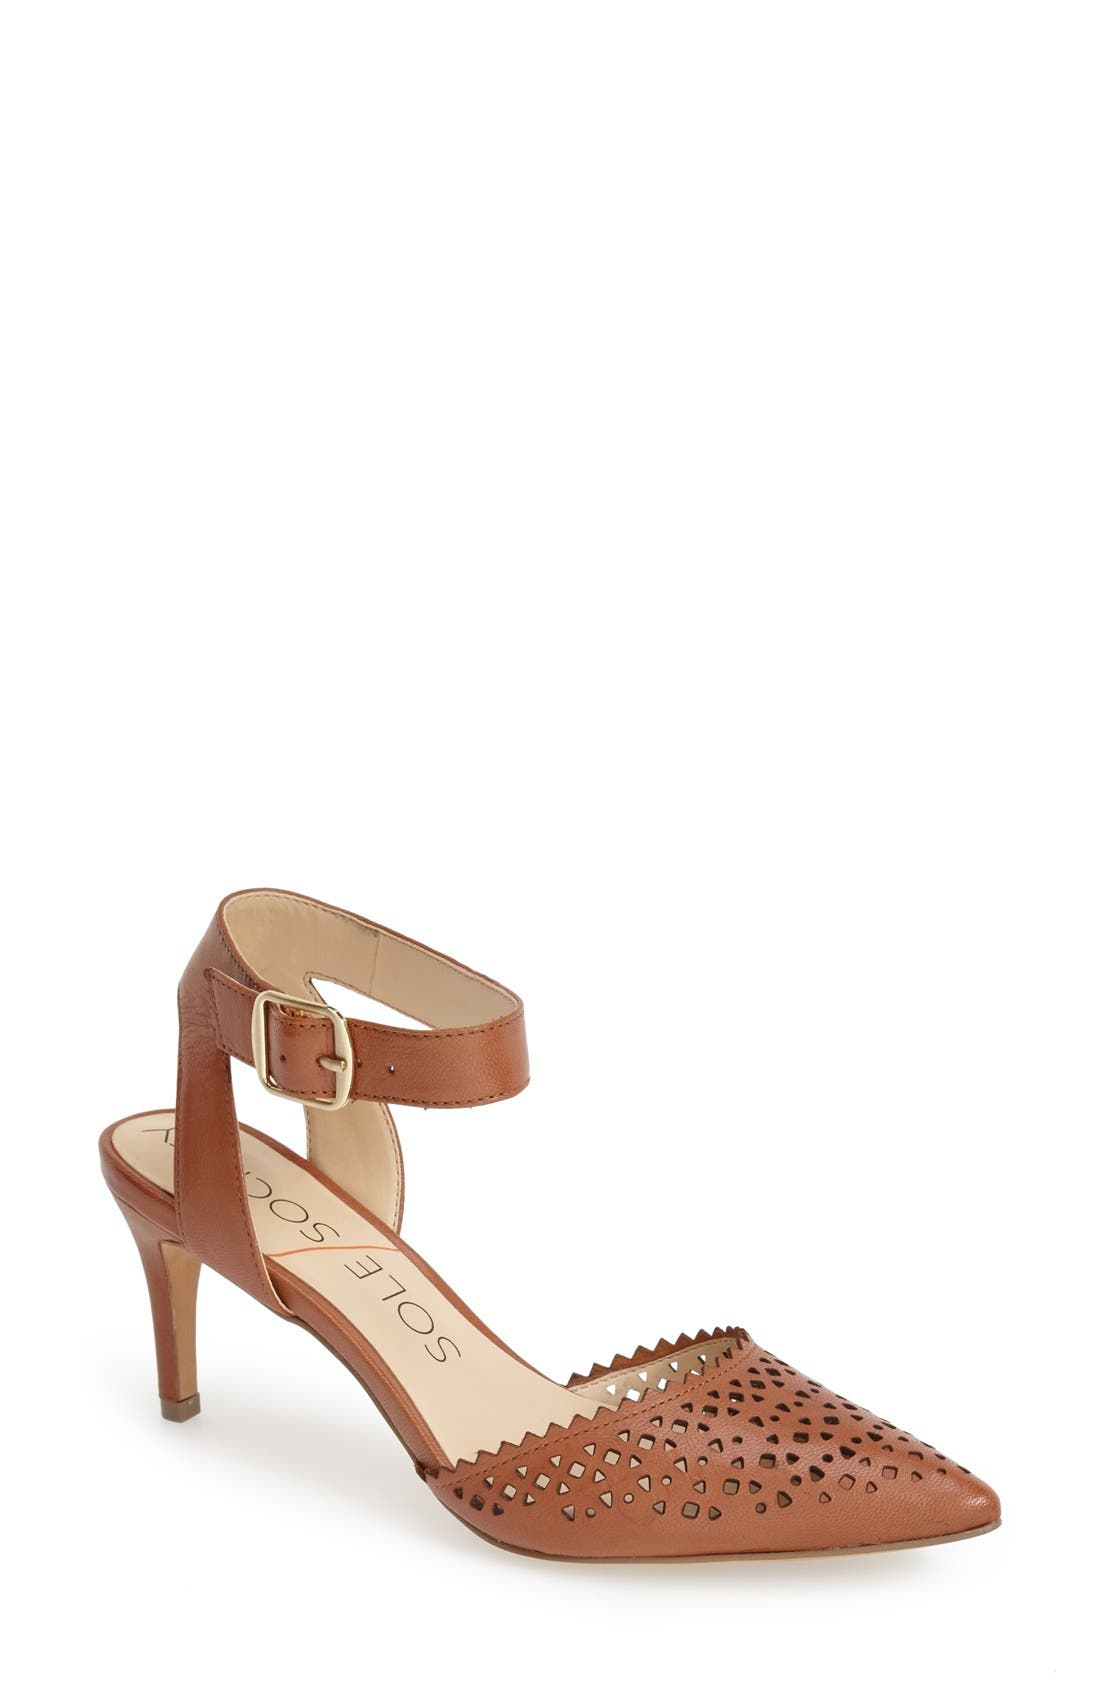 Main Image - Sole Society 'Emma' Ankle Strap Pump (Women)